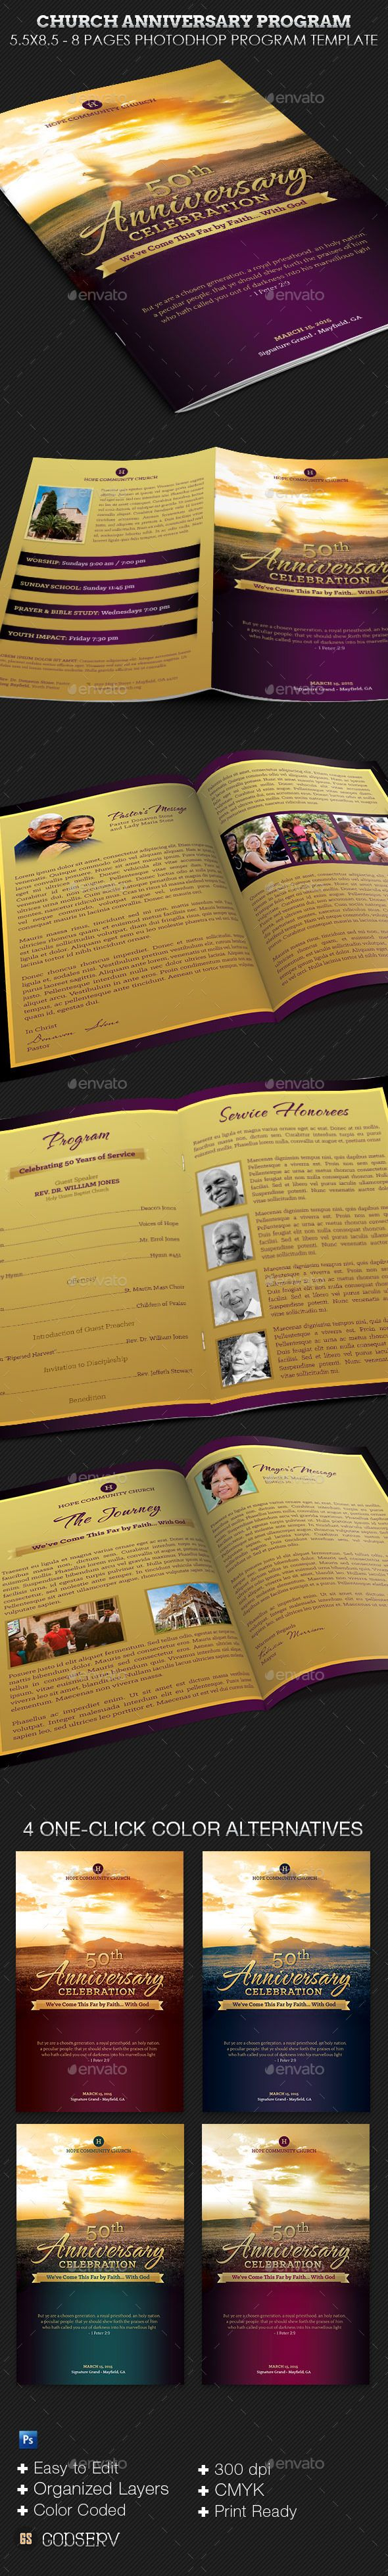 church anniversary service program template by godserv church